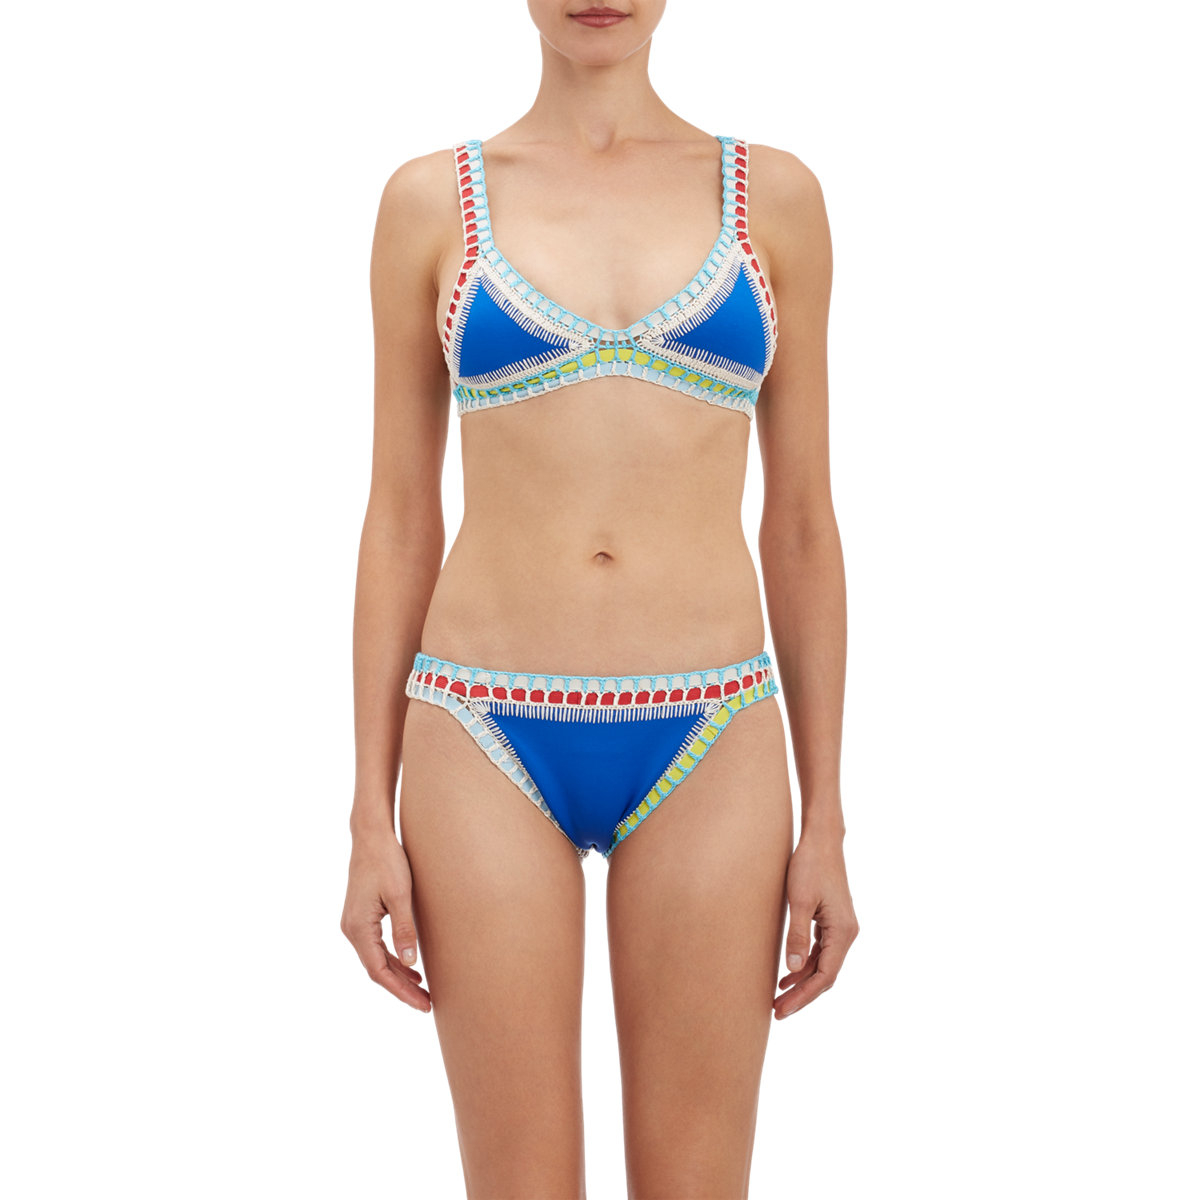 Kiini Tuesday Hand Crochet Triangle Bikini Top In